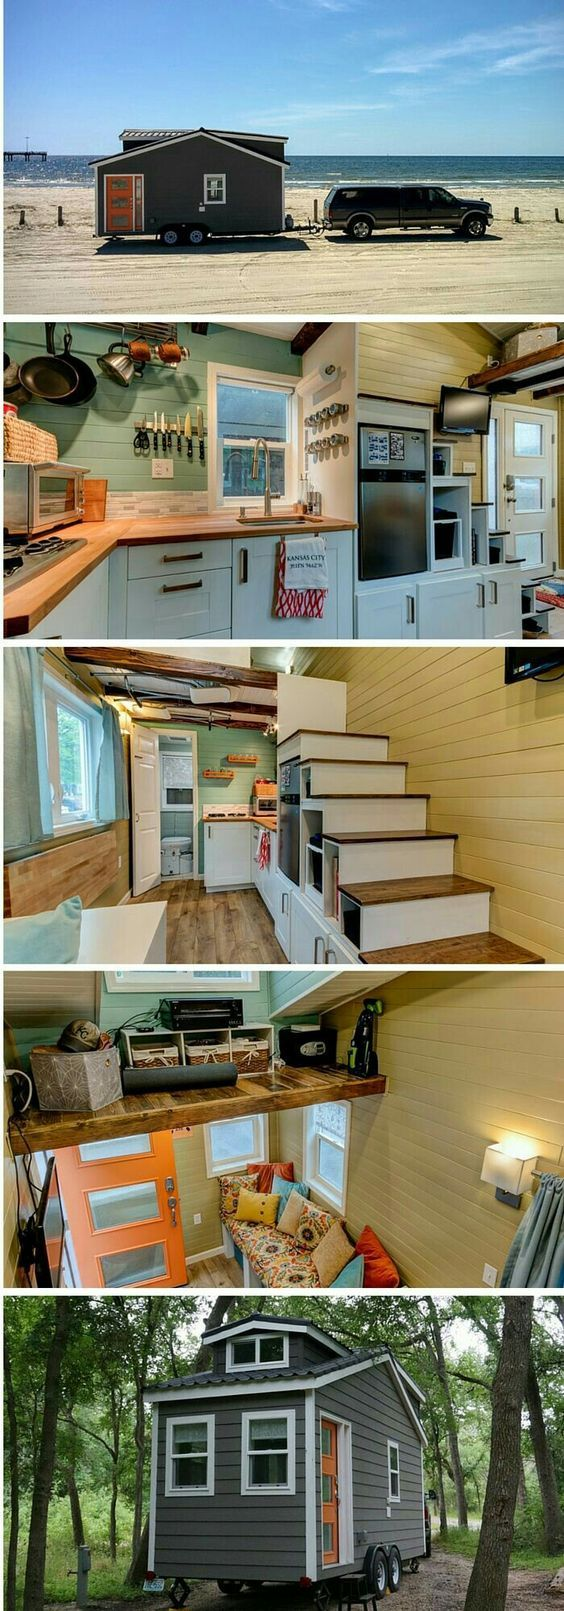 162 best Tiny houses images on Pinterest | Small houses, Tiny ...